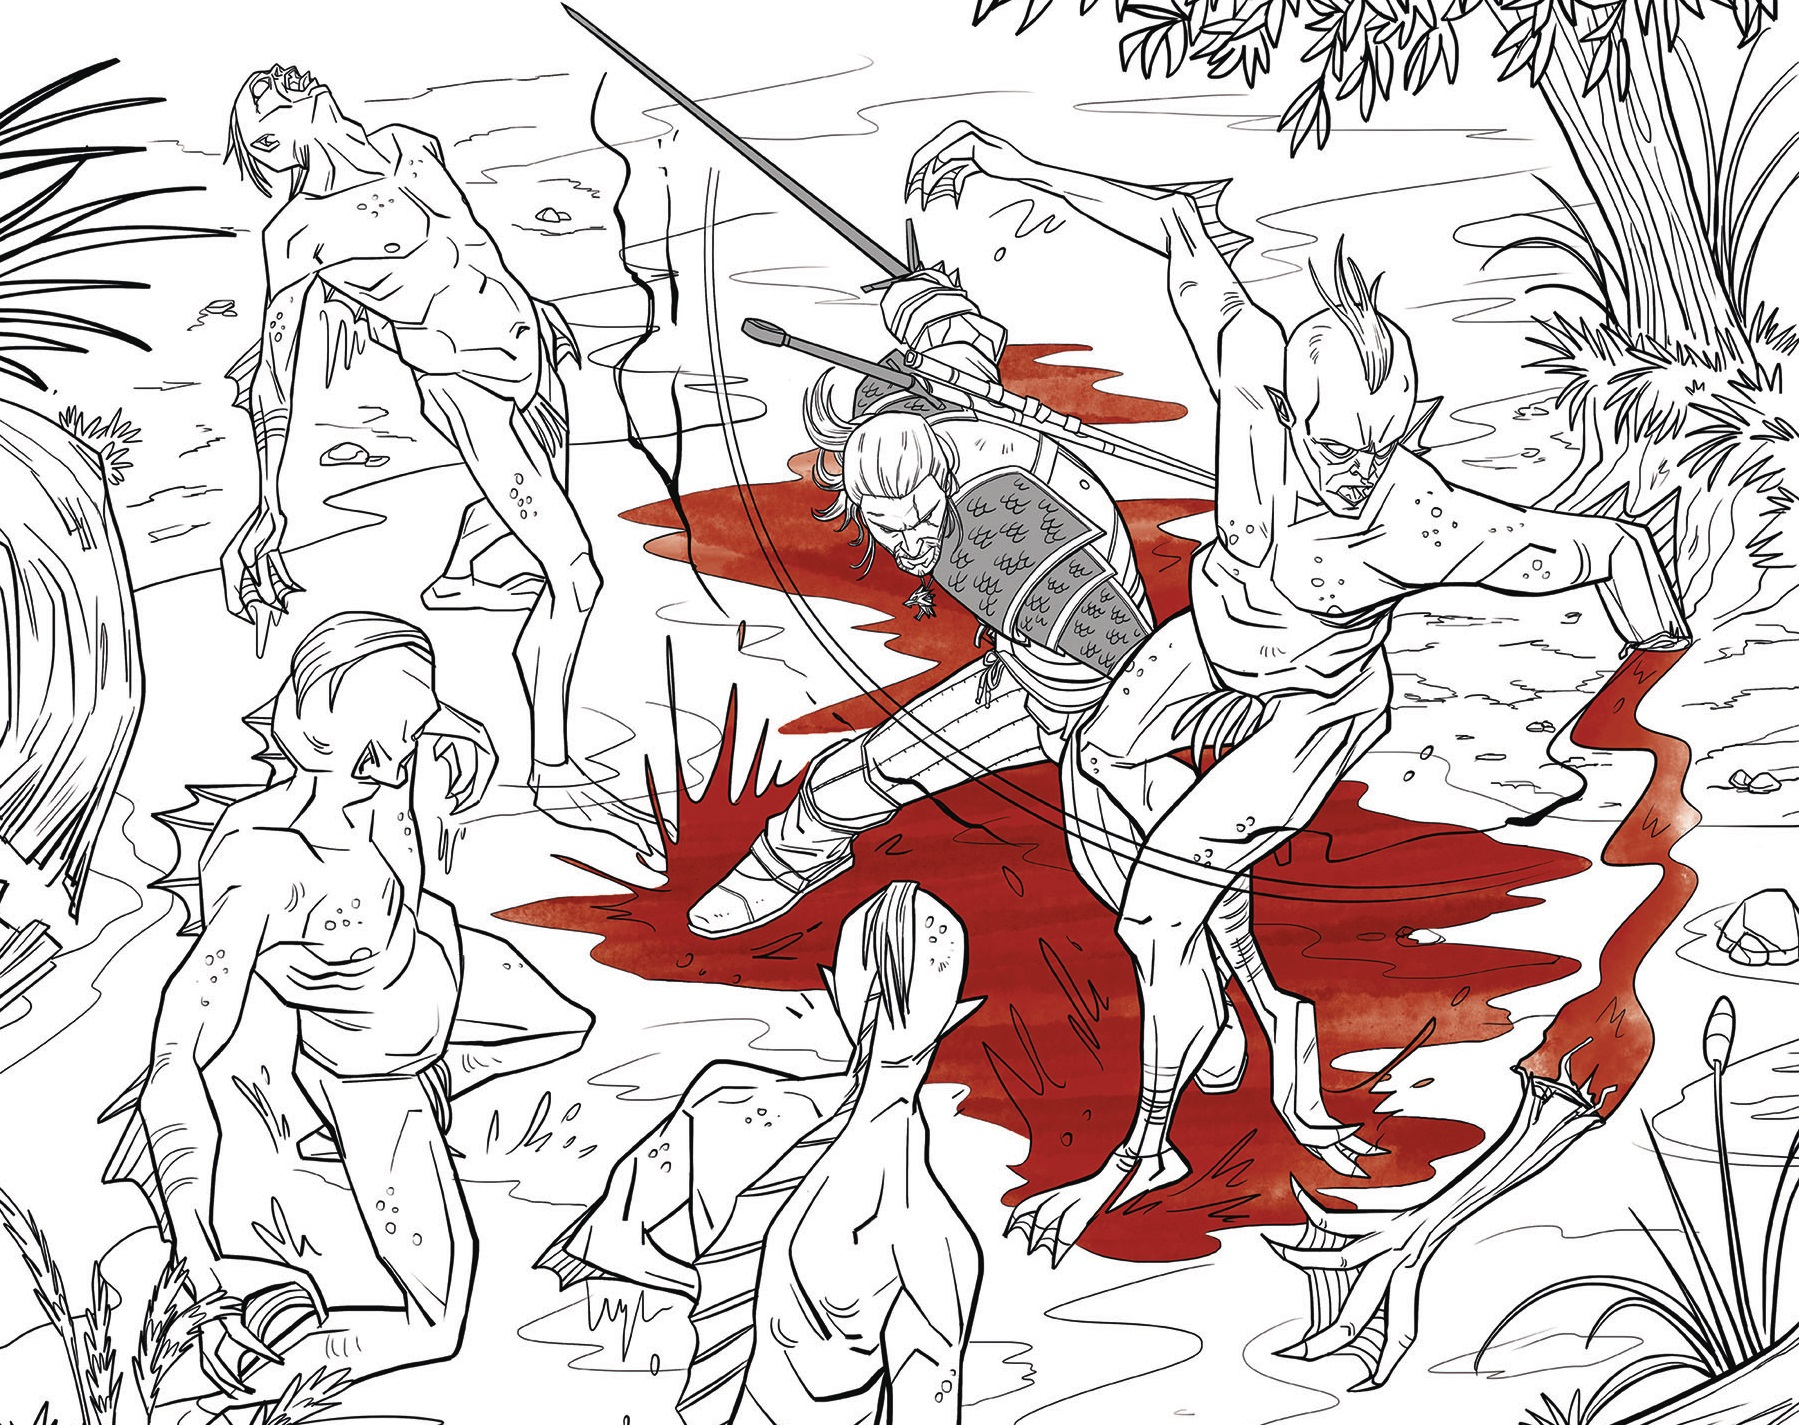 the witcher gets adult coloring book adaptation - Nude Coloring Book